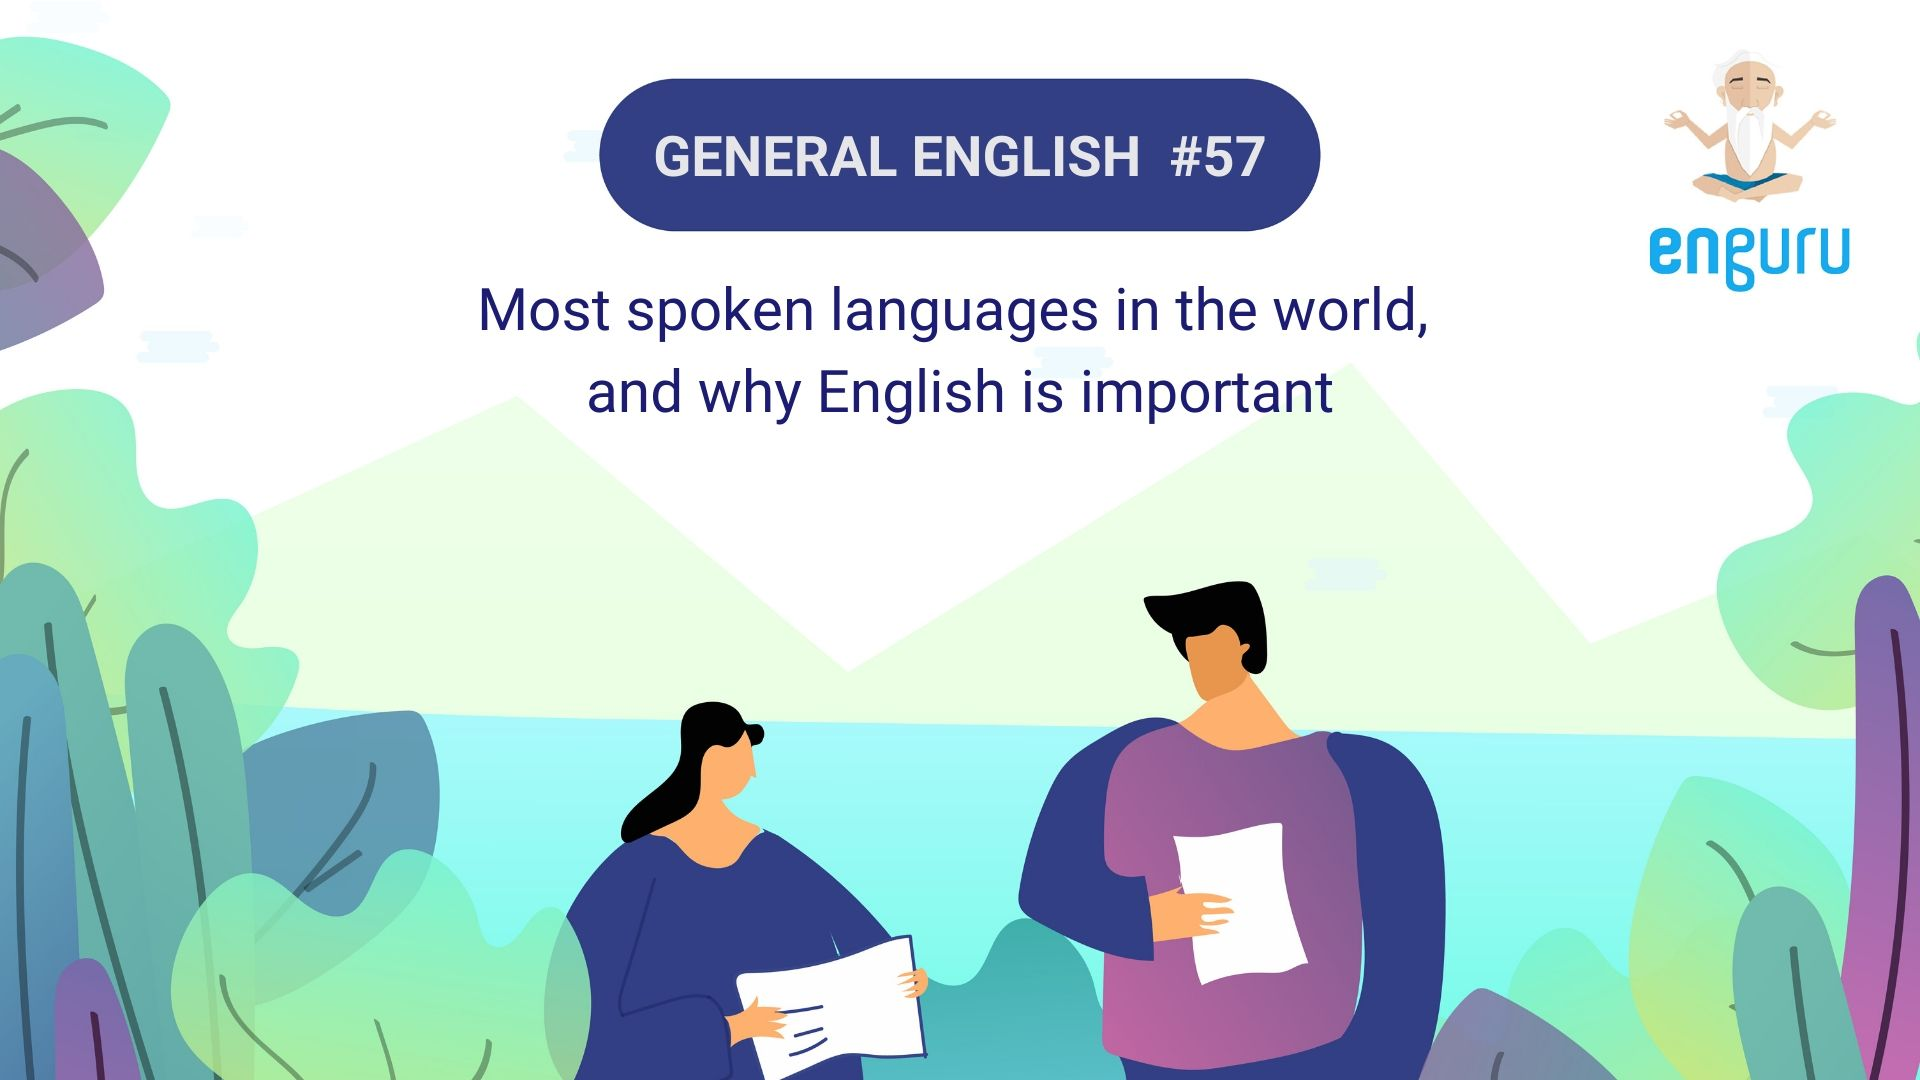 Most spoken languages in the world, and why English is important